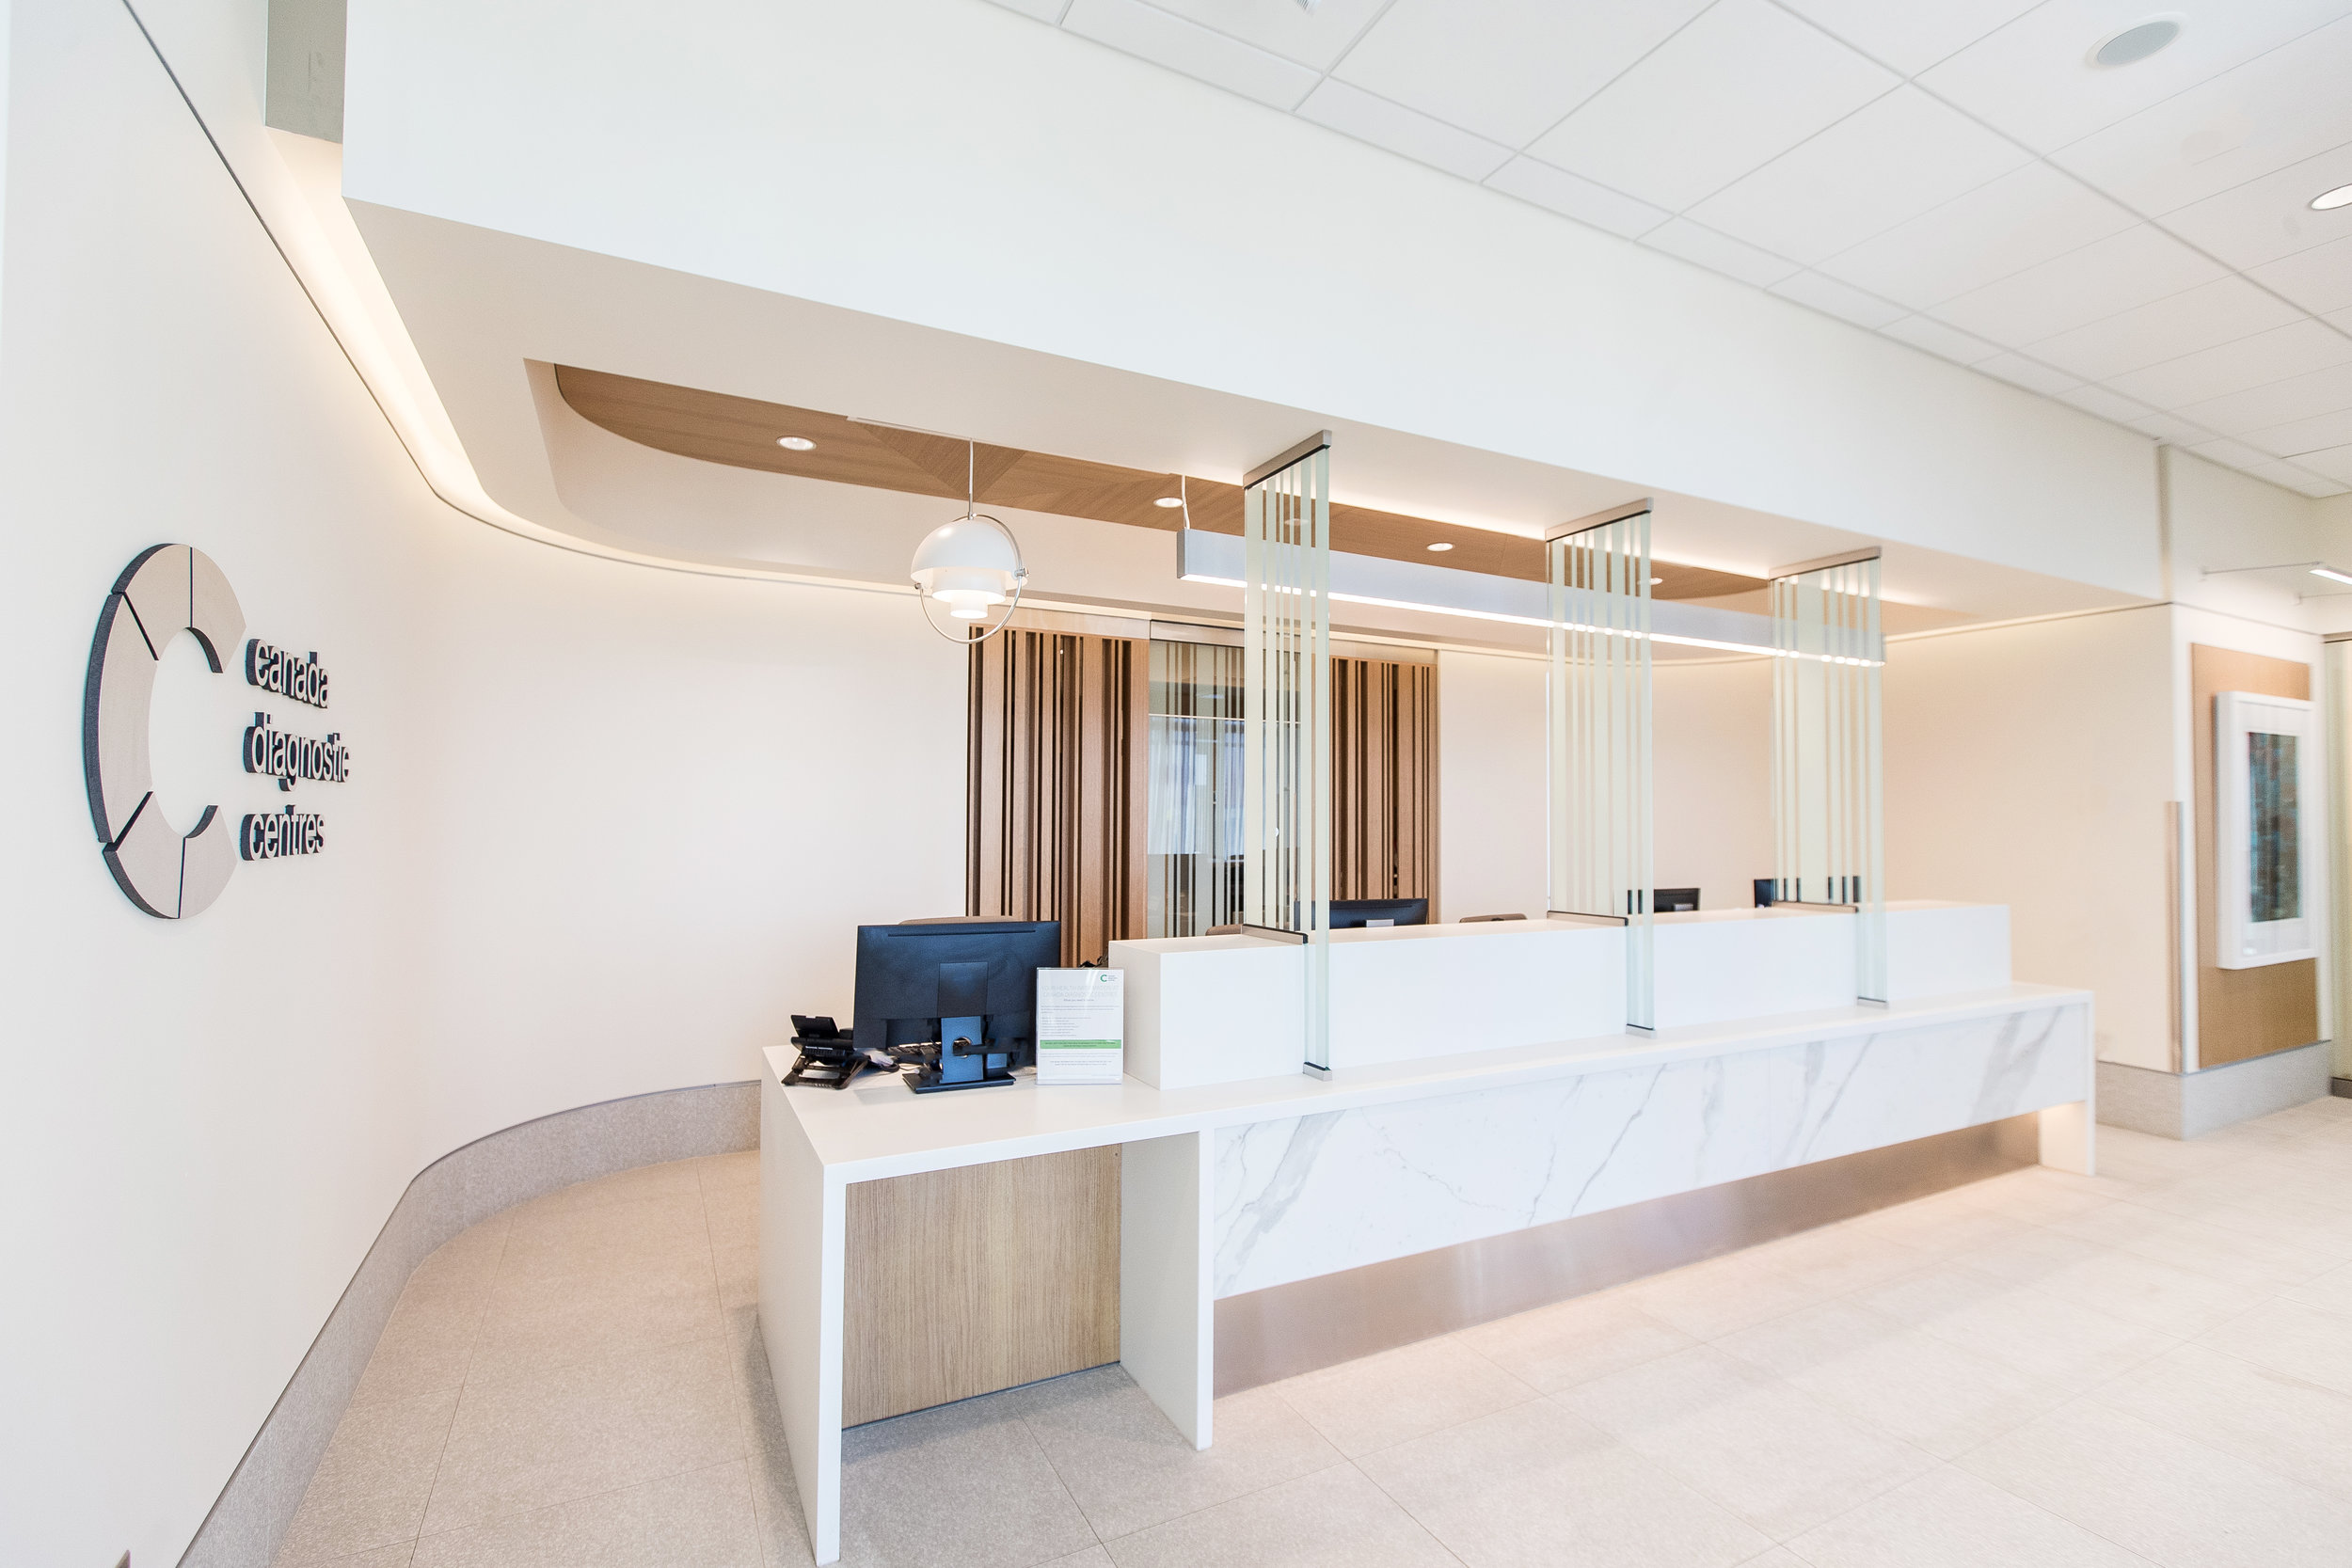 Job Name:  CDC Ellerslie   Contractor:  Keller Construction   Description:  Tenant fit-out for a Canada Diagnostics Clinic in the Ellwood Medical centre in Ellerslie. This state of the art clinic has many specialized and detailed pieces of medical equipment.